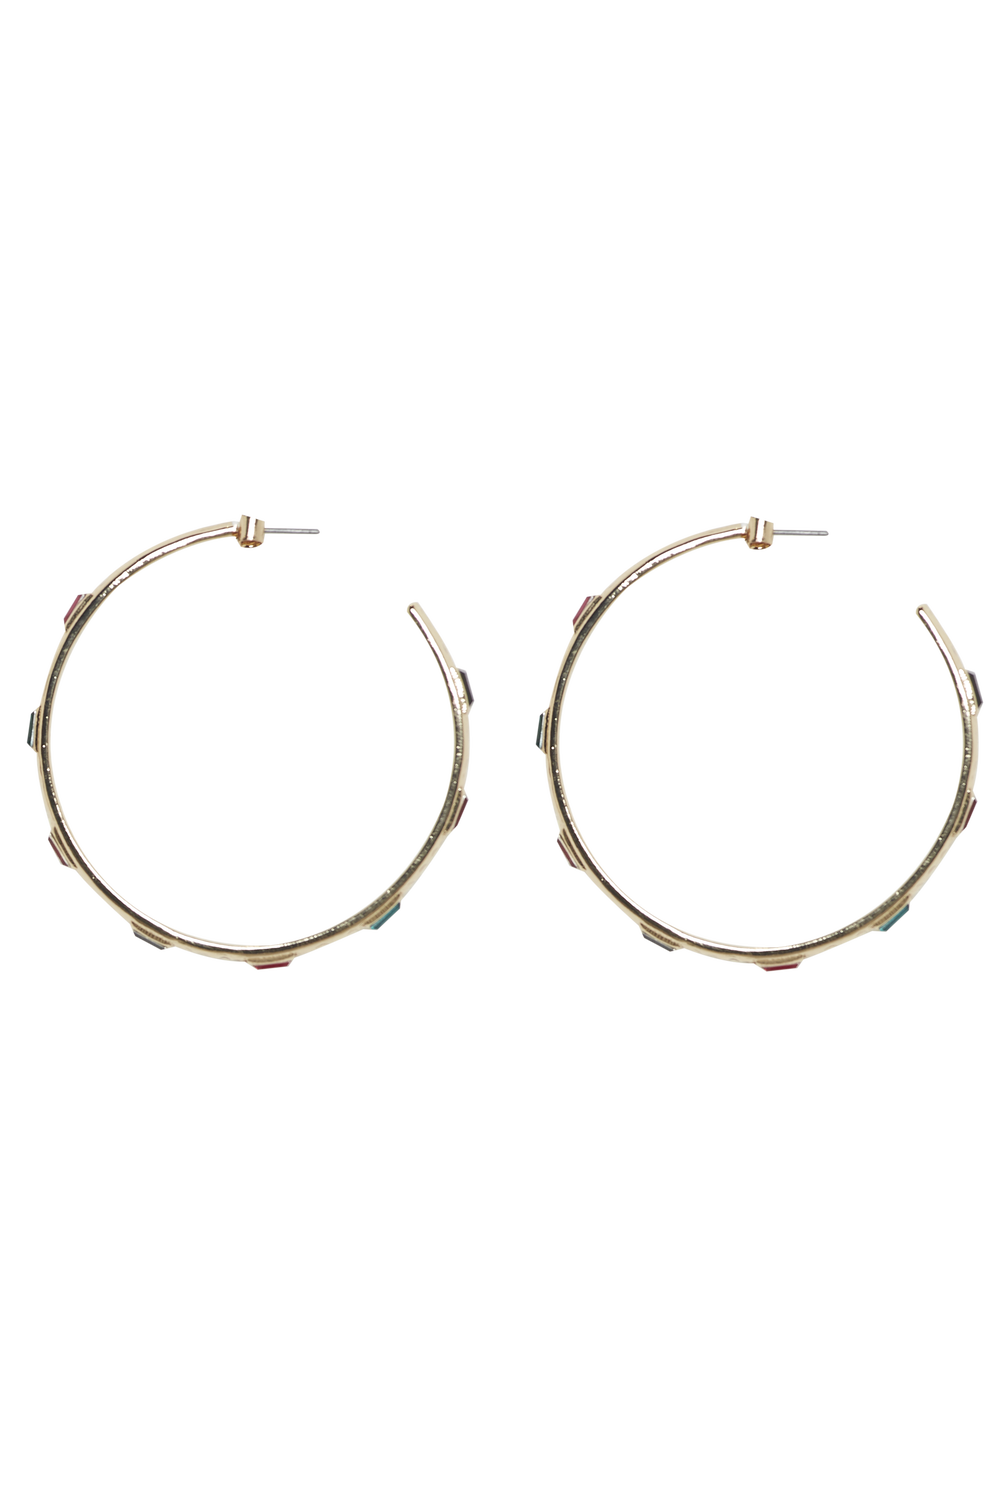 MULTI COLOUR HOOP EARRINGS in colour GOLD EARTH